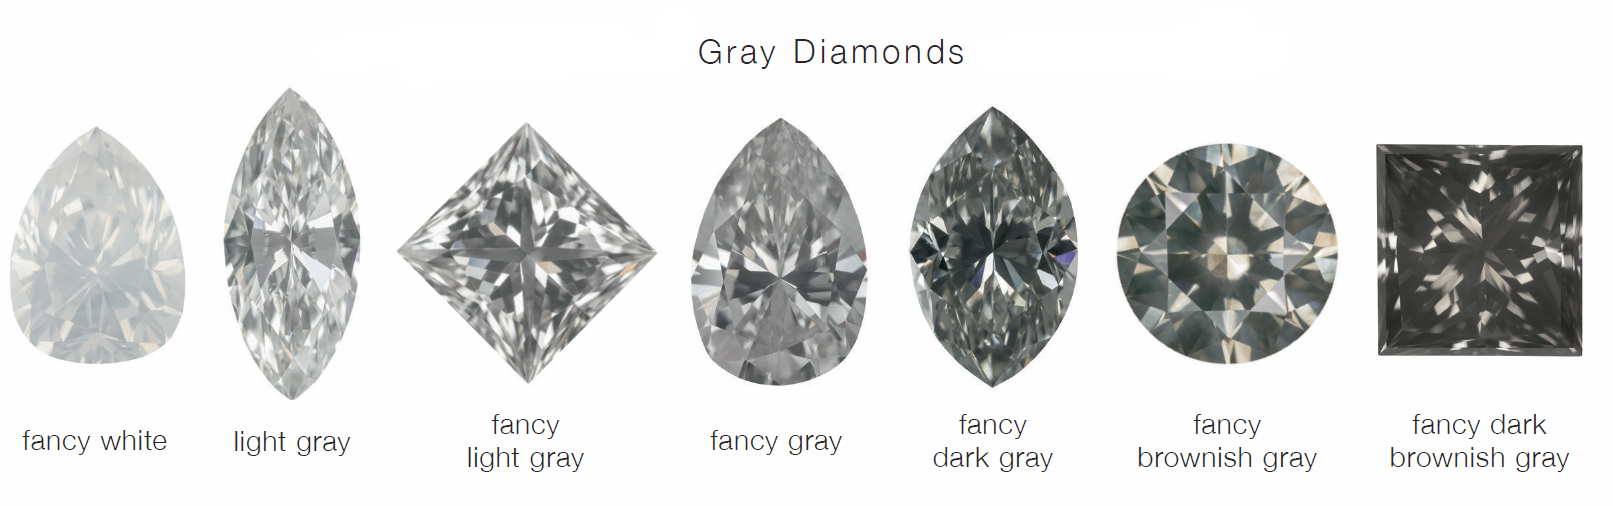 grey diamonds